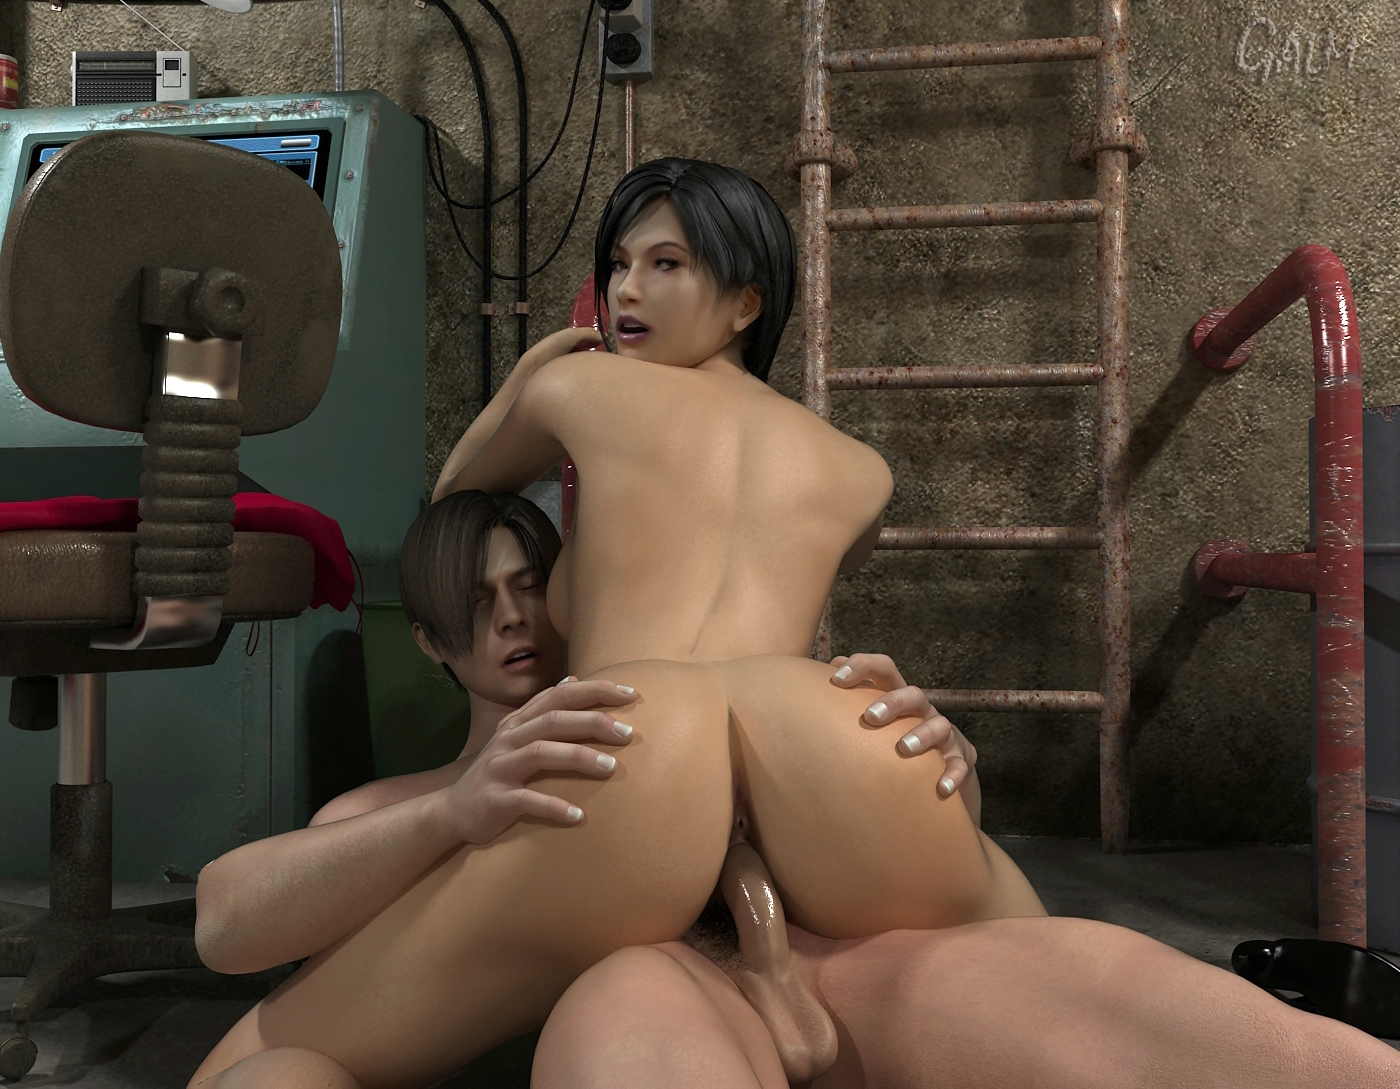 Resident evil movie sex nude photo fucks galleries